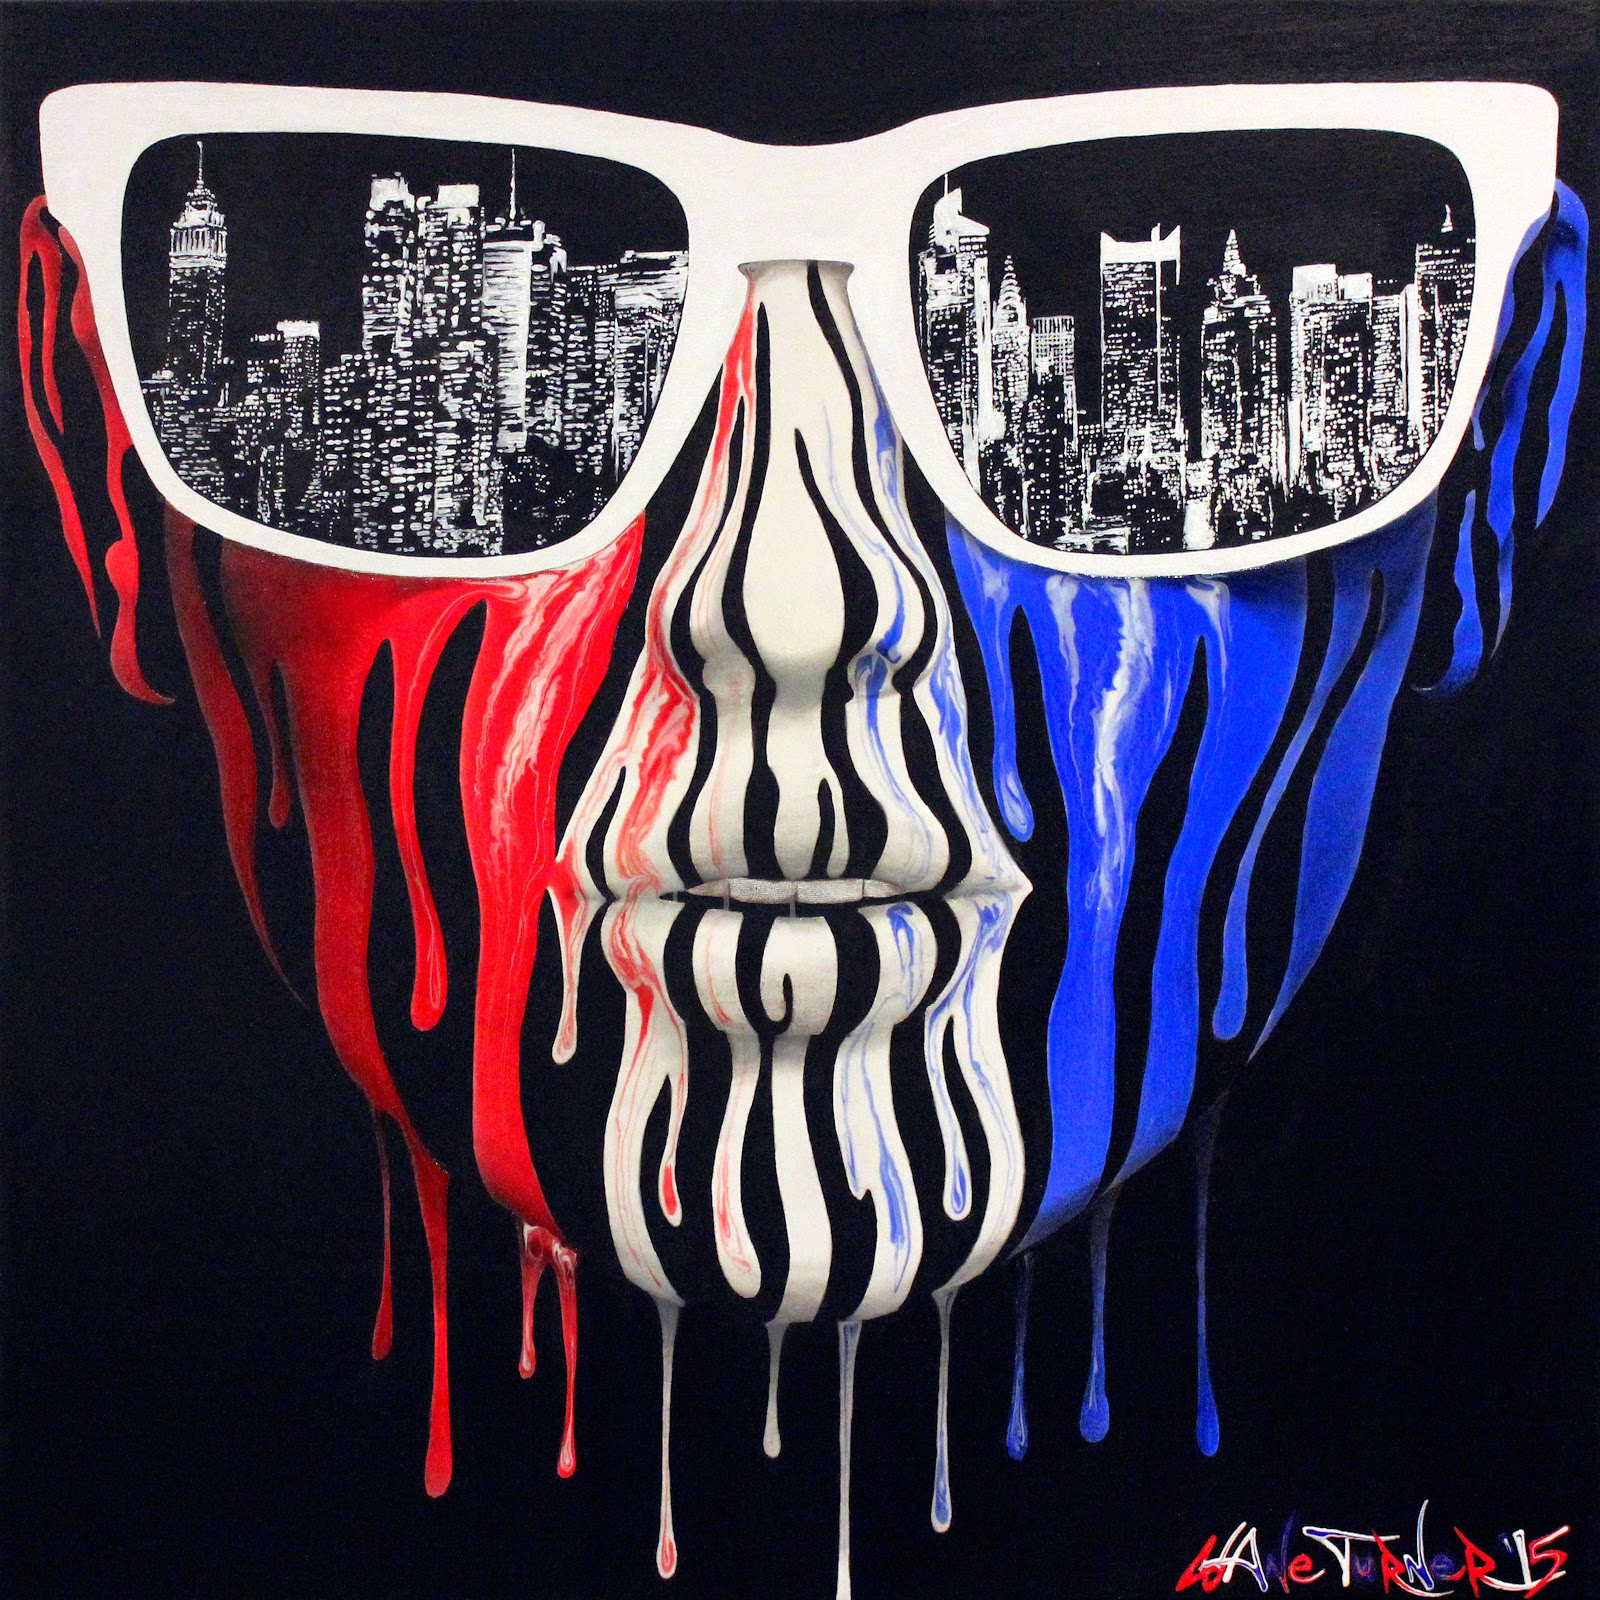 Surreal Acrylic painting of portrait of a woman's face made of dripping red, white, and blue paint, wearing sunglasses with the reflection of the city lights of New York City skyline at night.